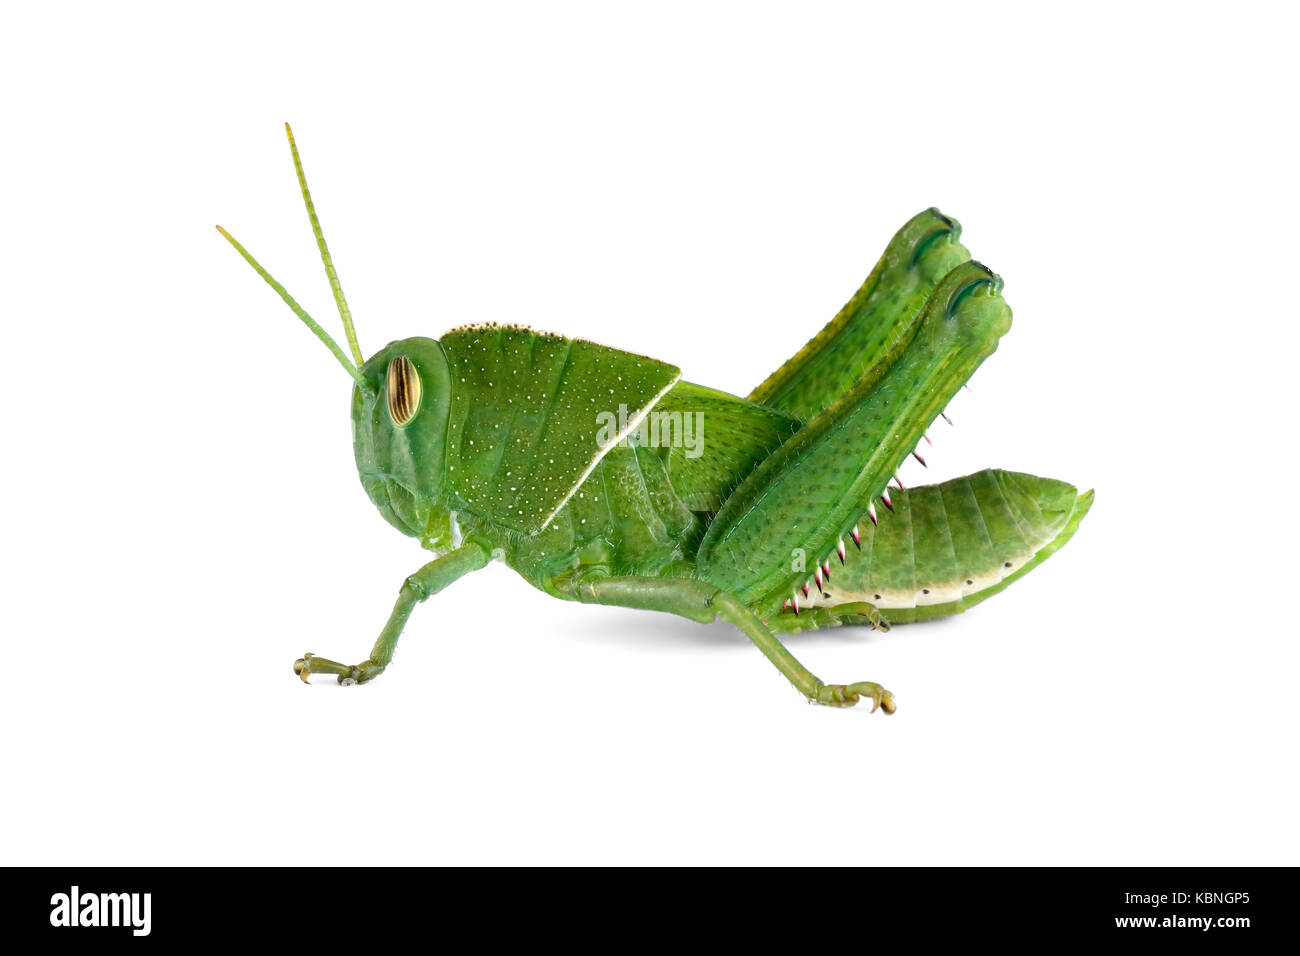 Nymph of a garden locust (Acanthacris ruficornis) on white, South Africa - Stock Image